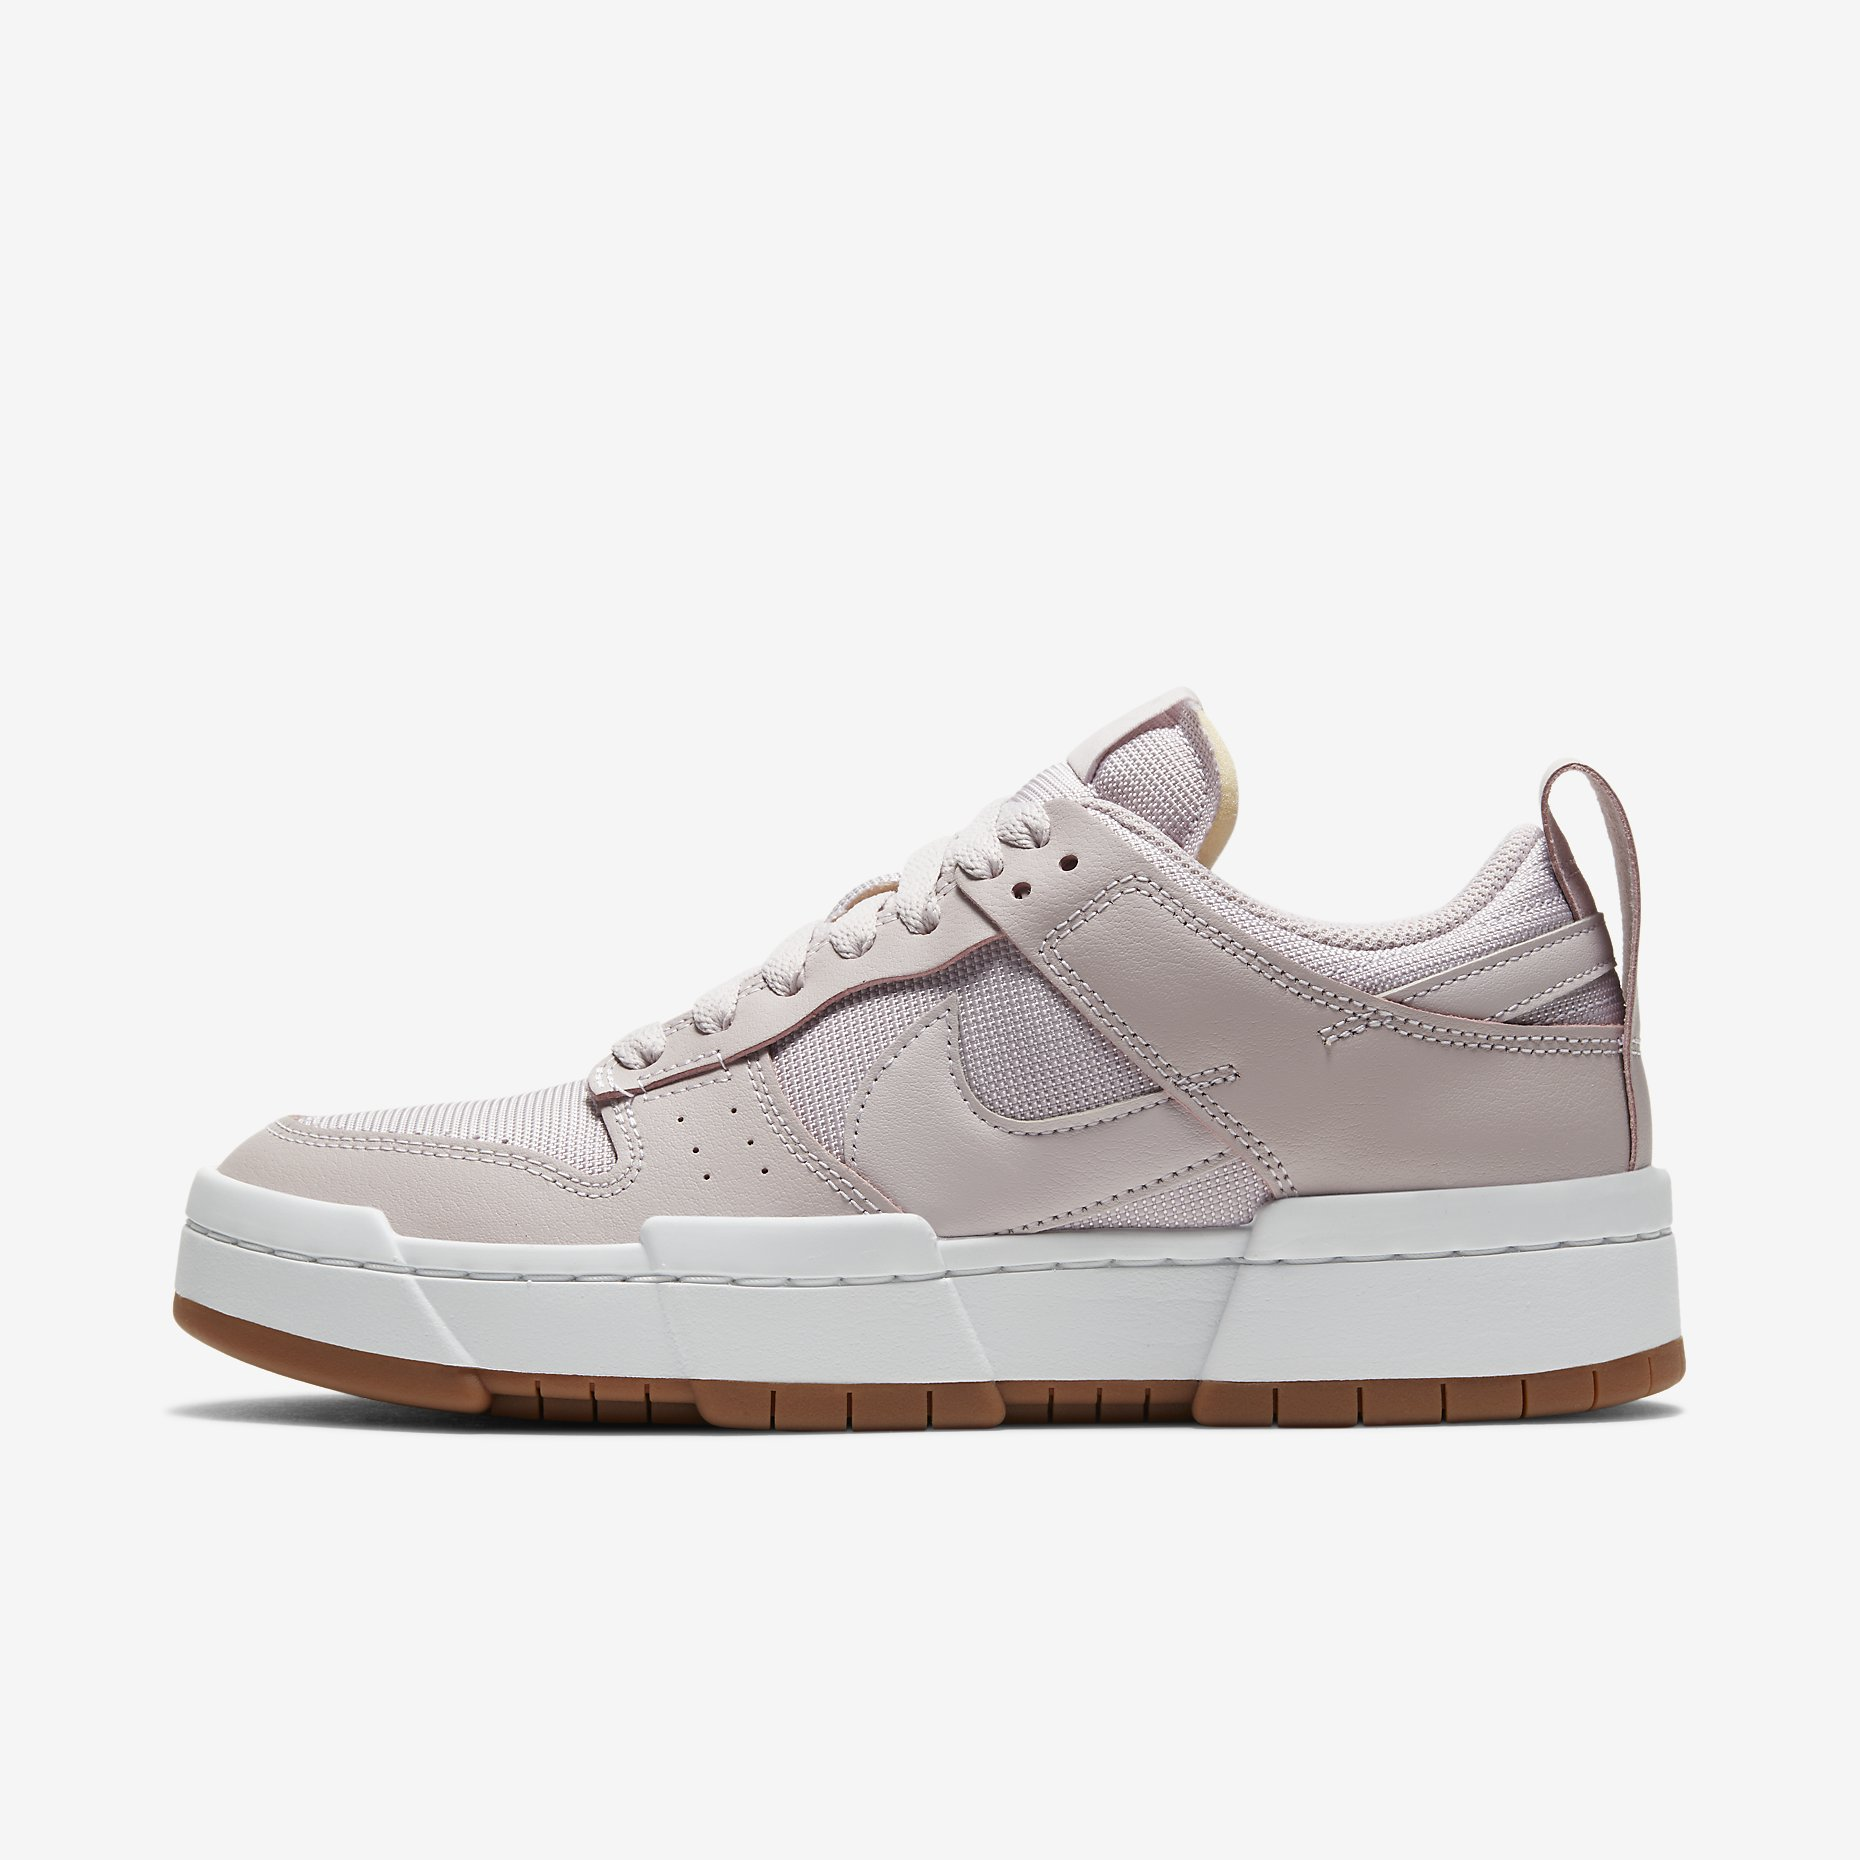 Women's Nike Dunk Low Disrupt 'Platinum Violet'}